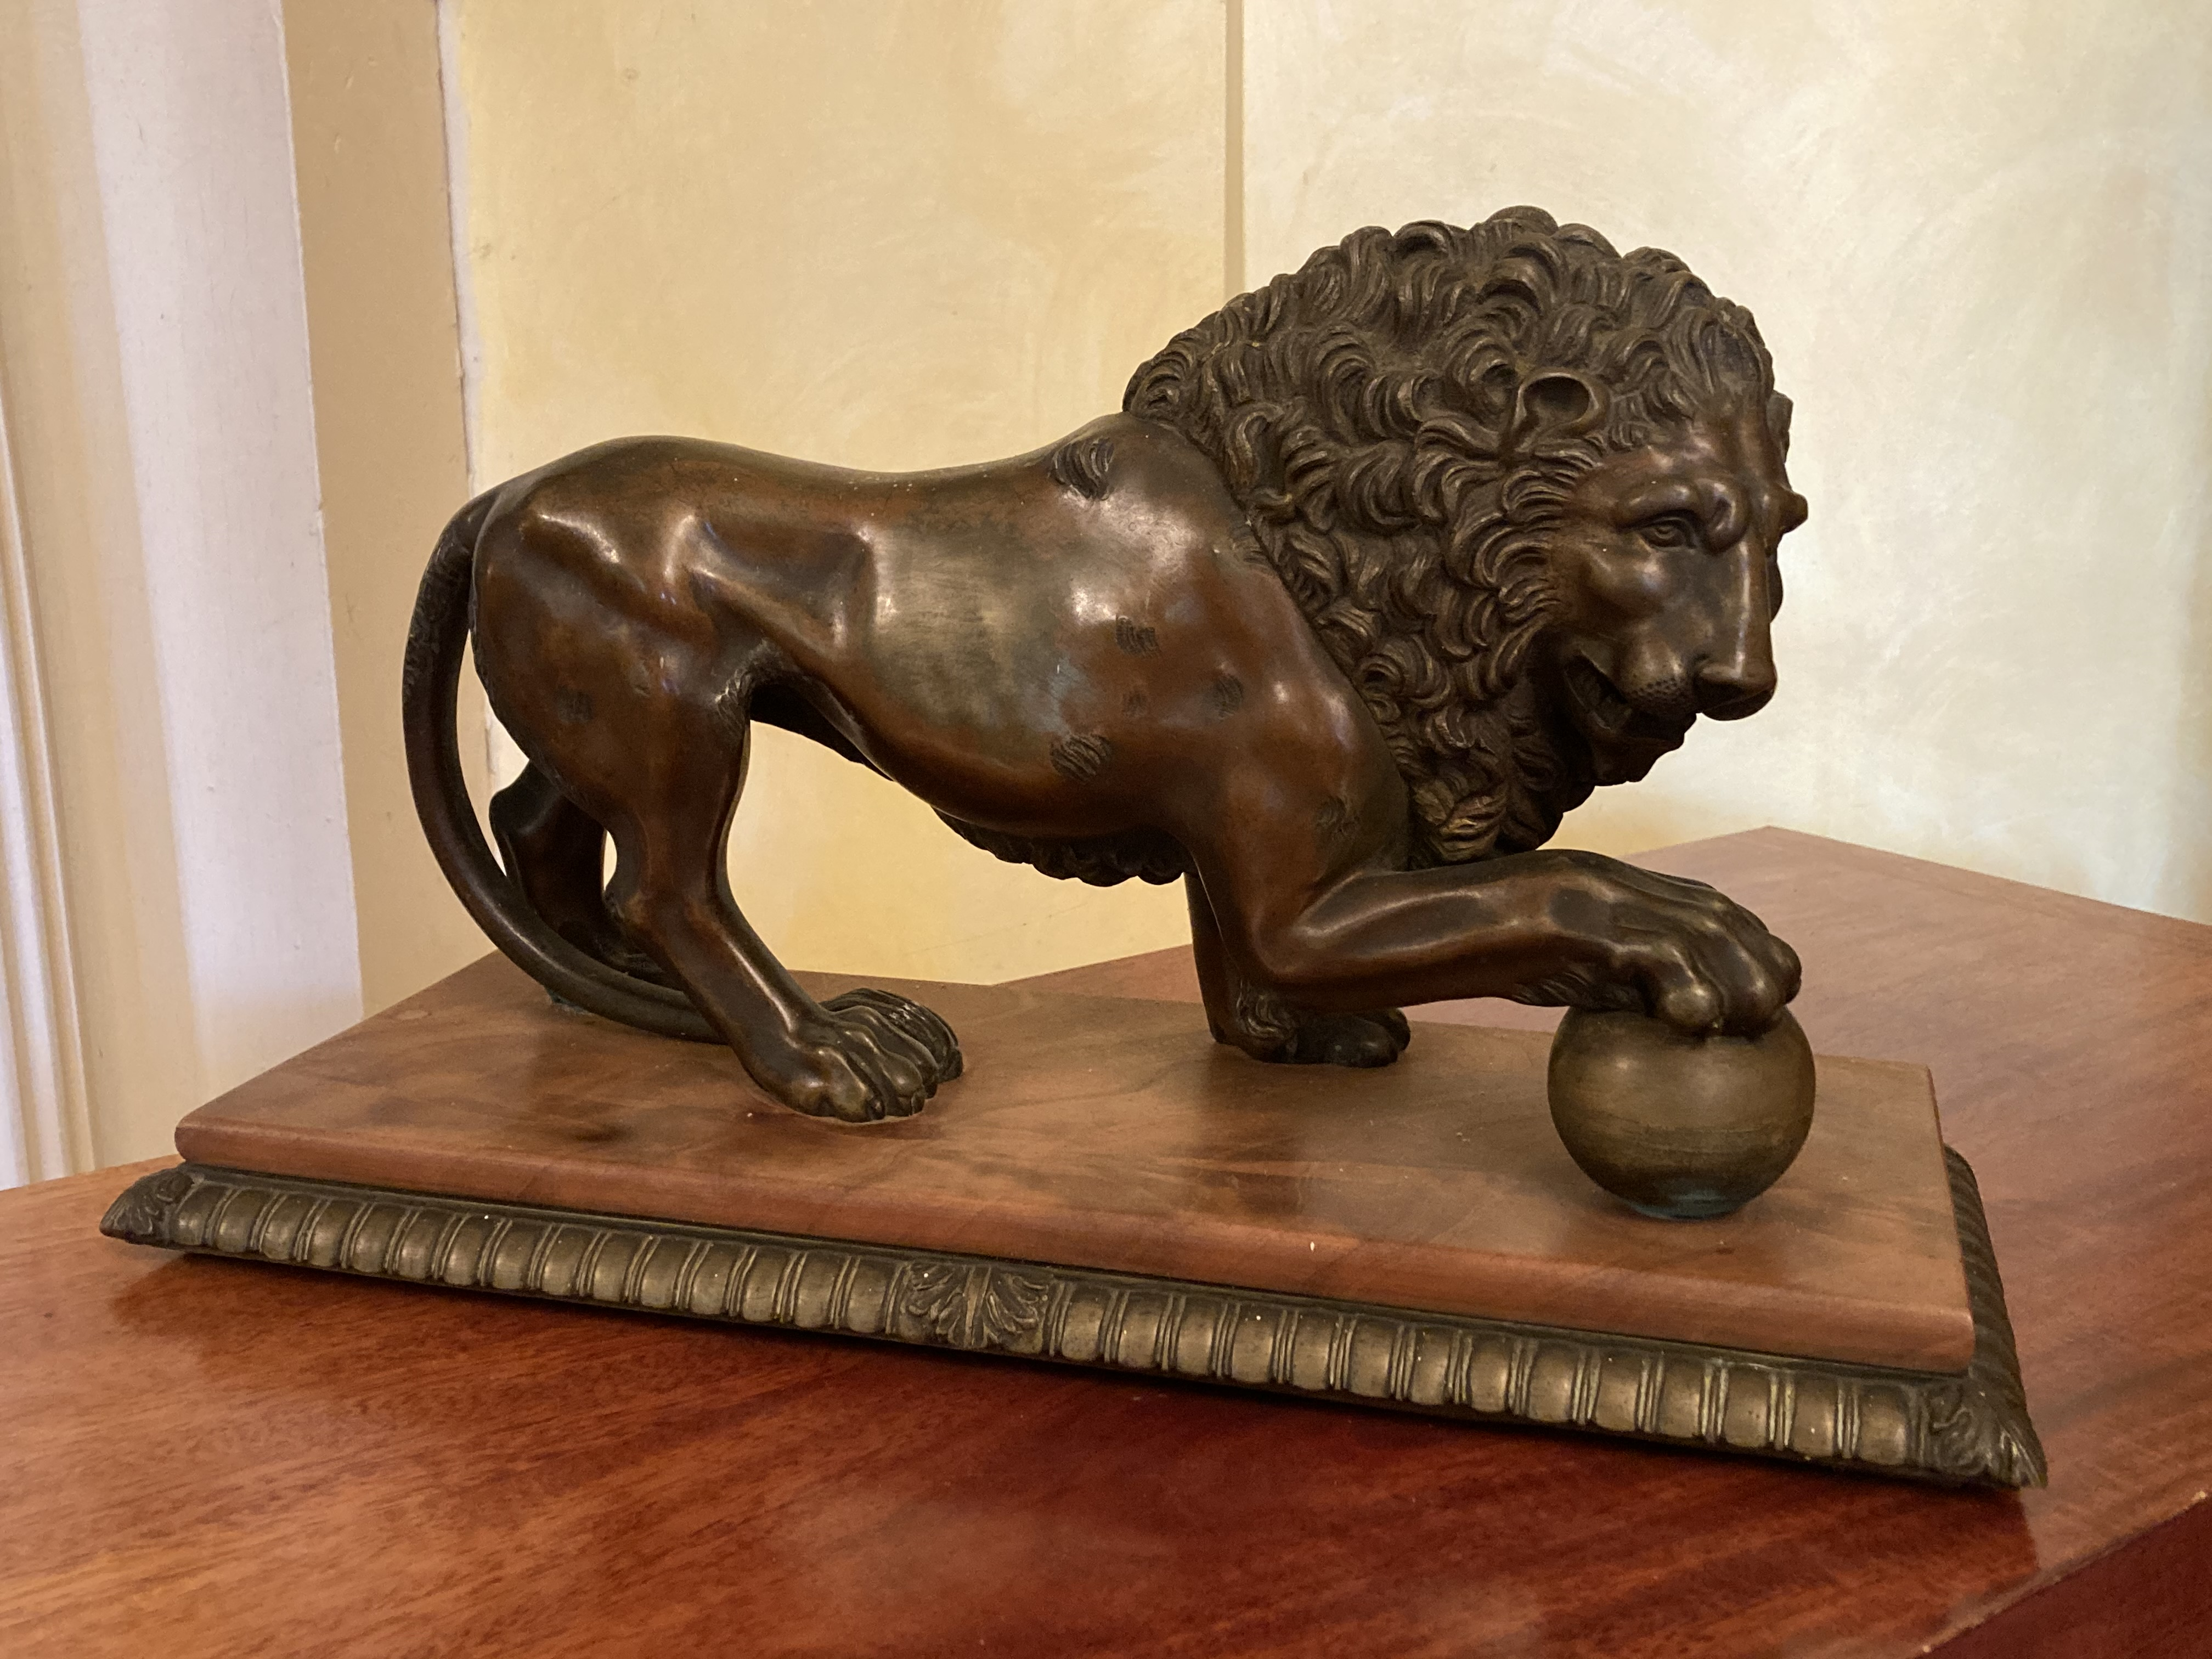 A bronze Figure of a Medici Lion, with right front paw on a sphere, on bronze and wooden base,